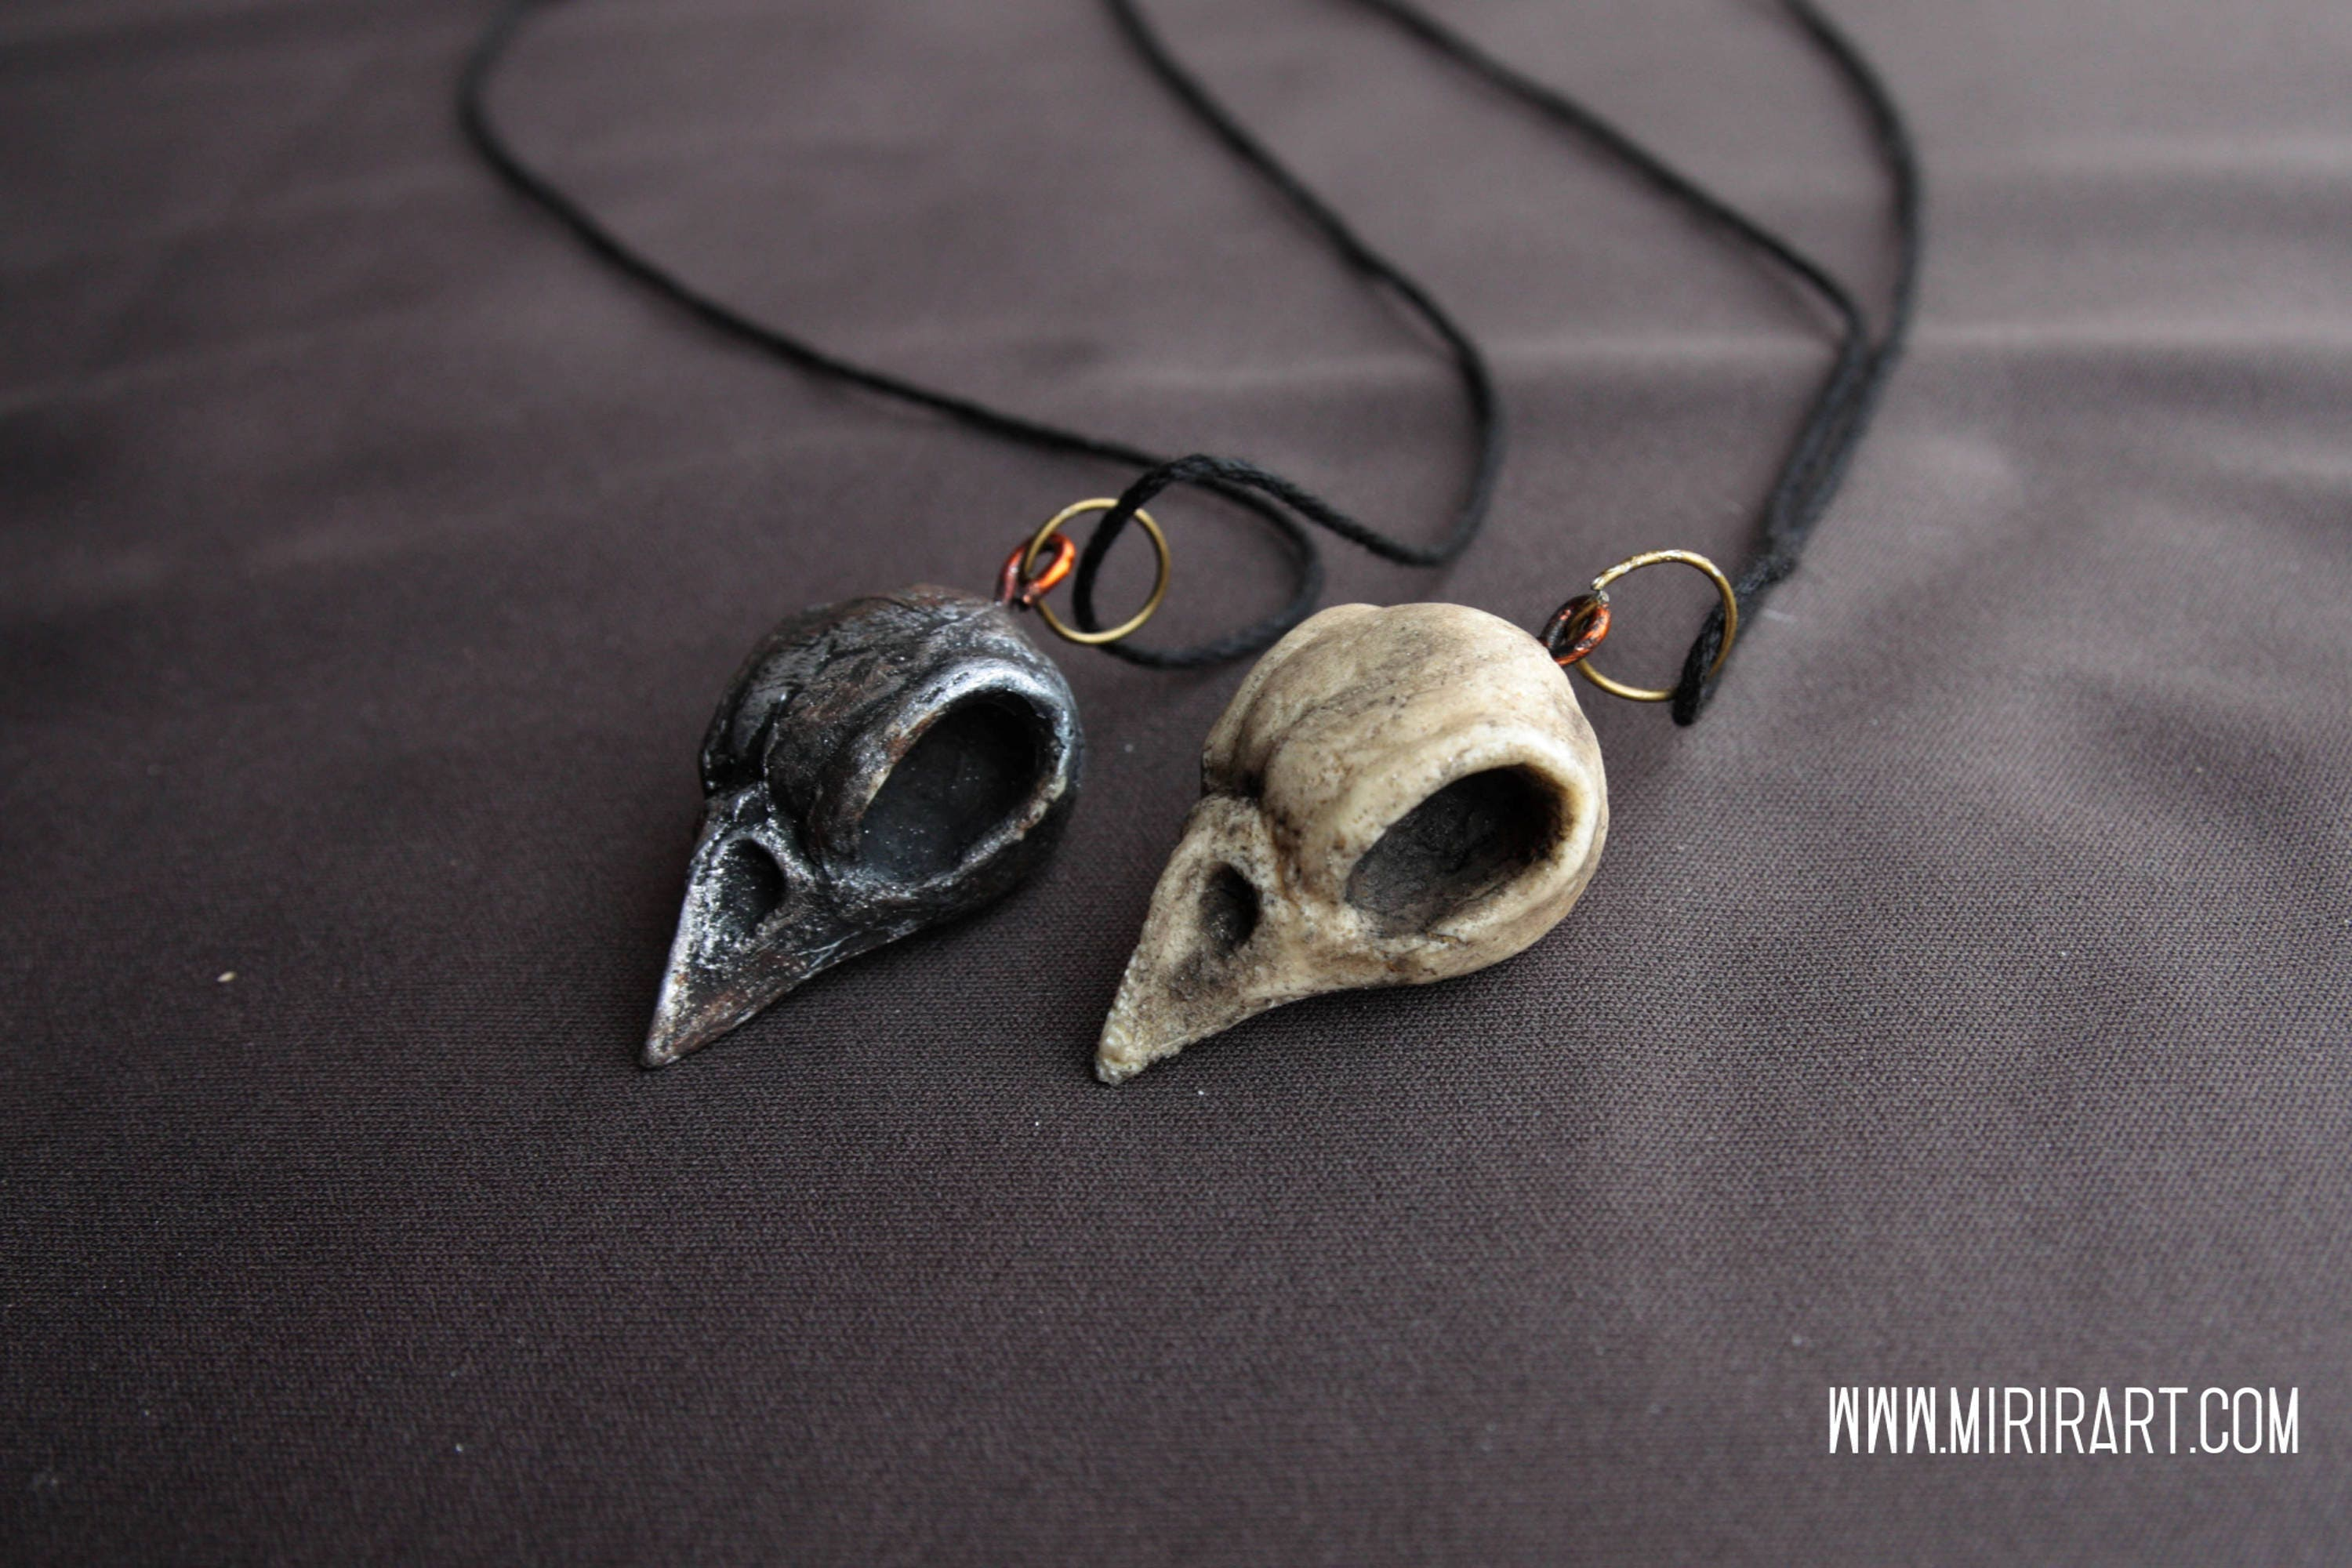 Necklace With Bird Skull Pendant In Resin Crow Post Etsy